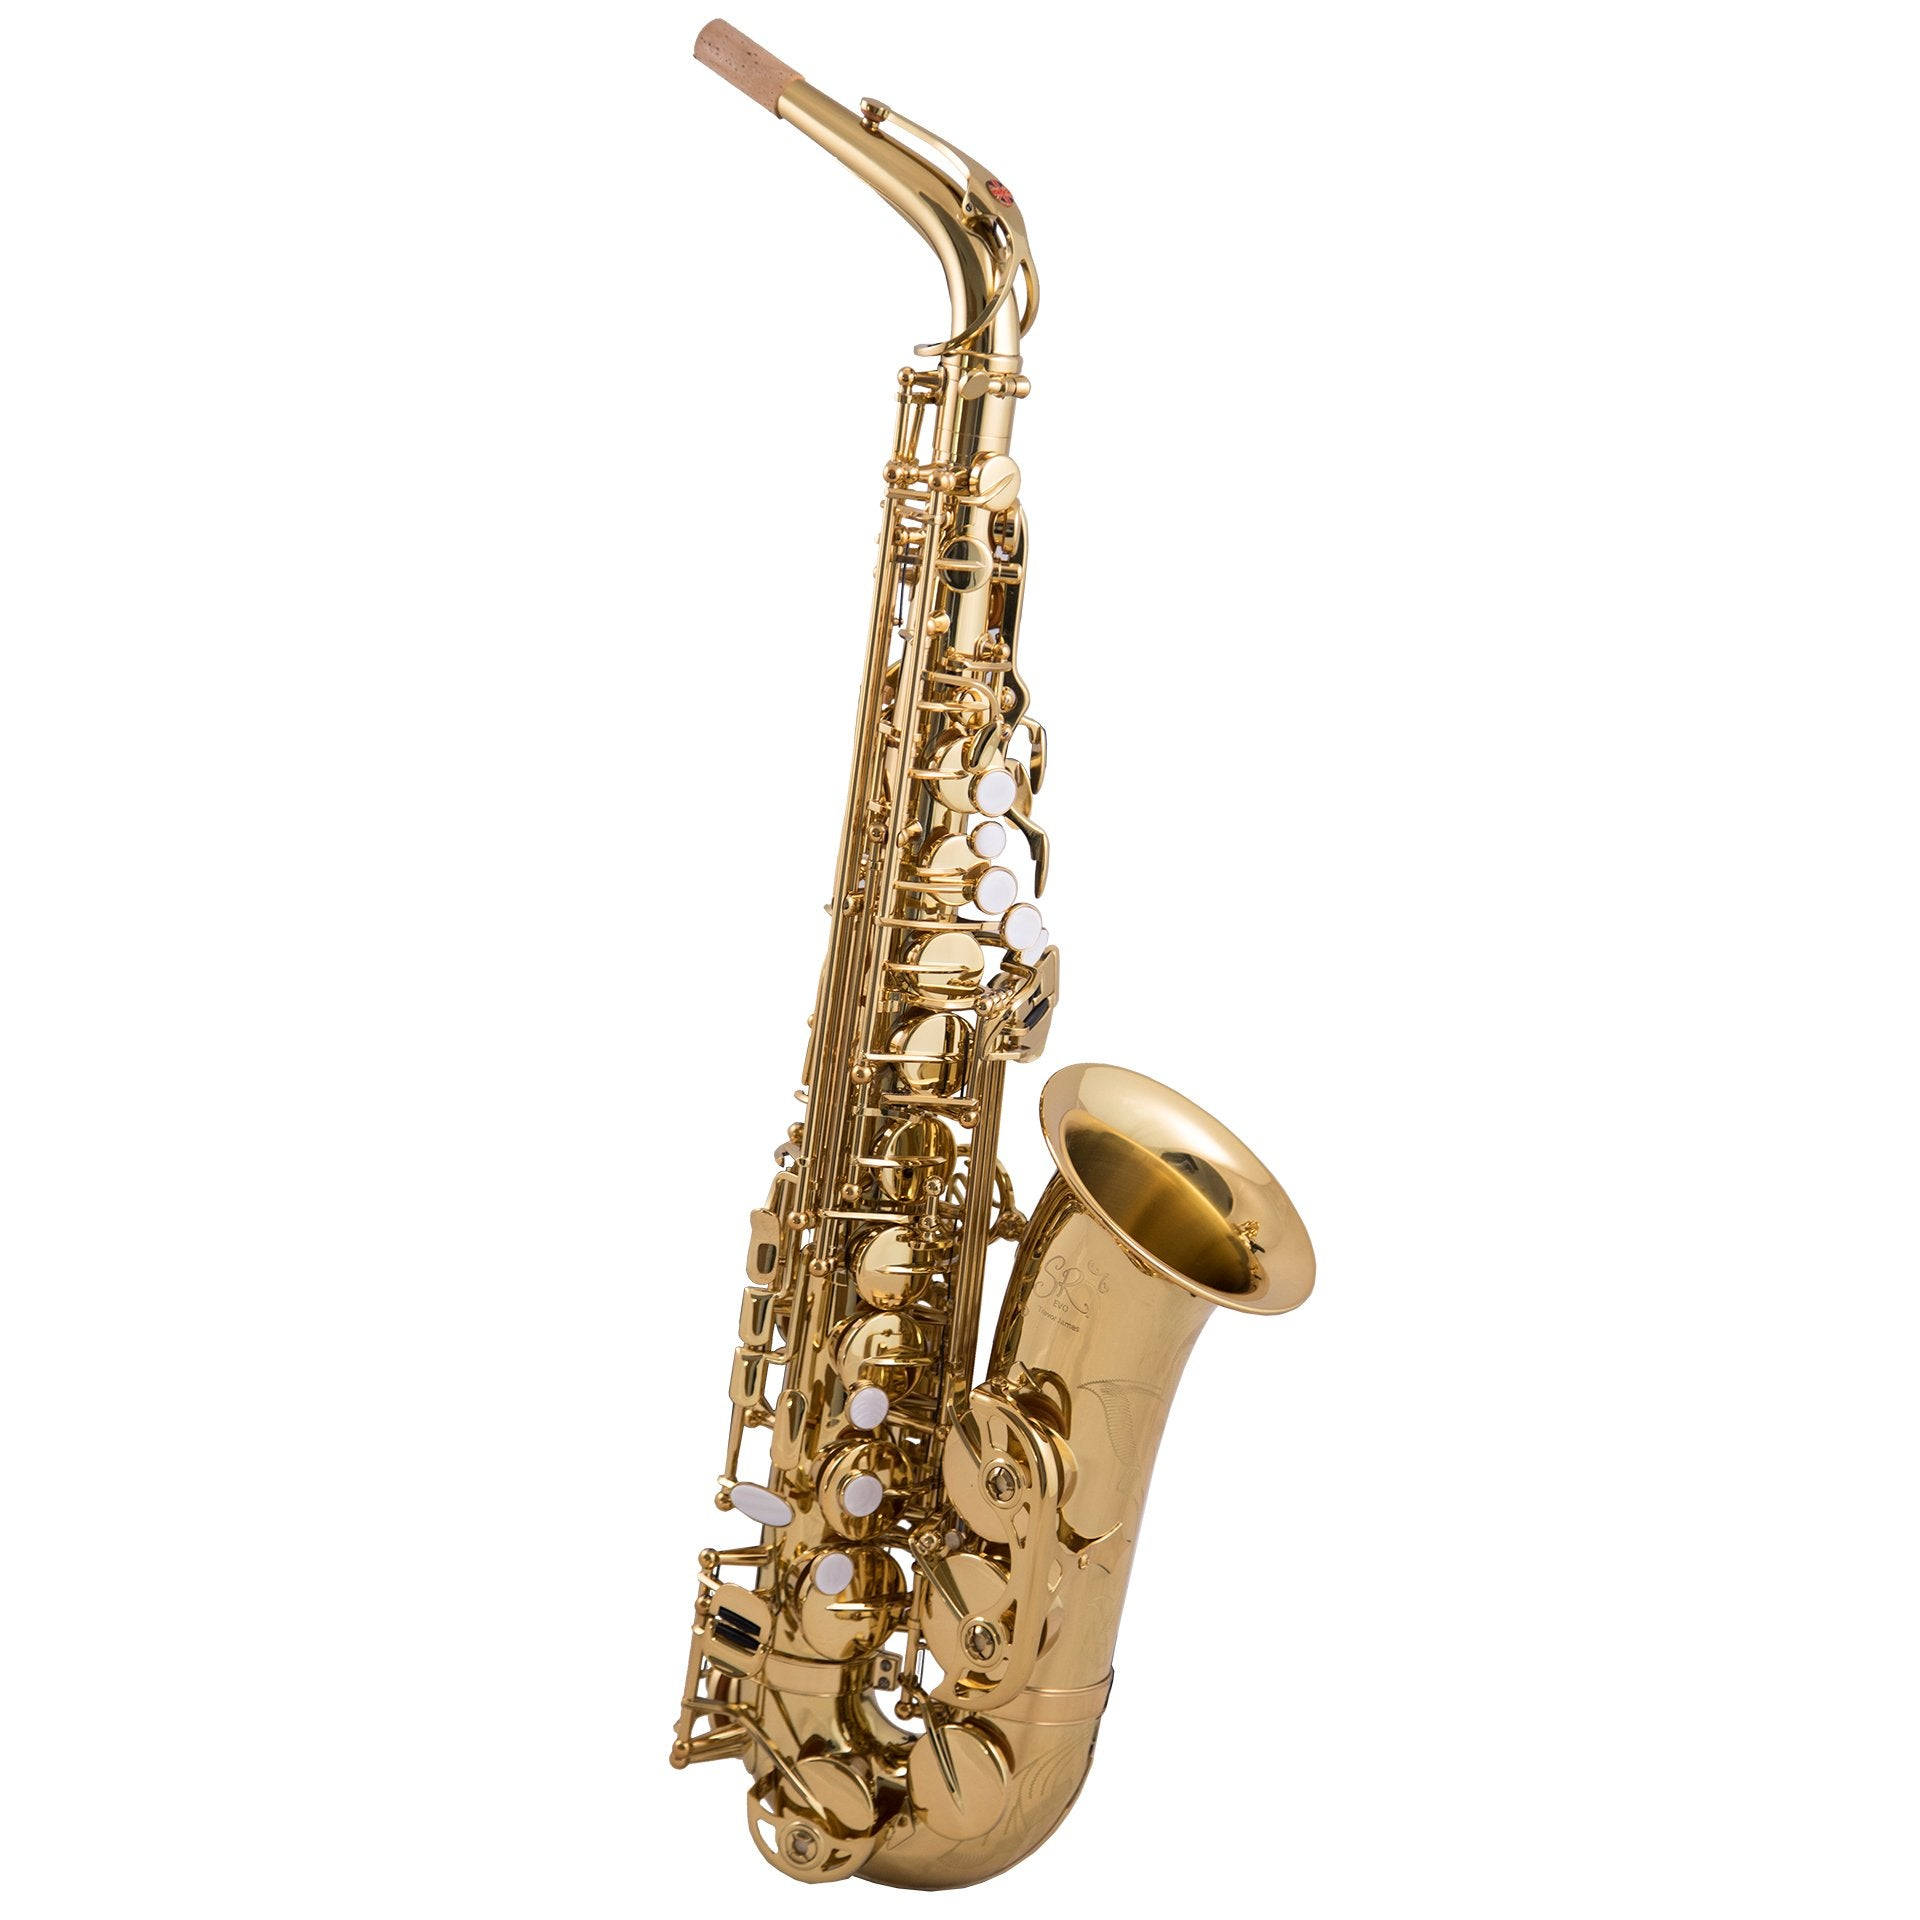 Trevor James - SR EVO Alto Saxophone-Saxophone-Trevor James-Music Elements